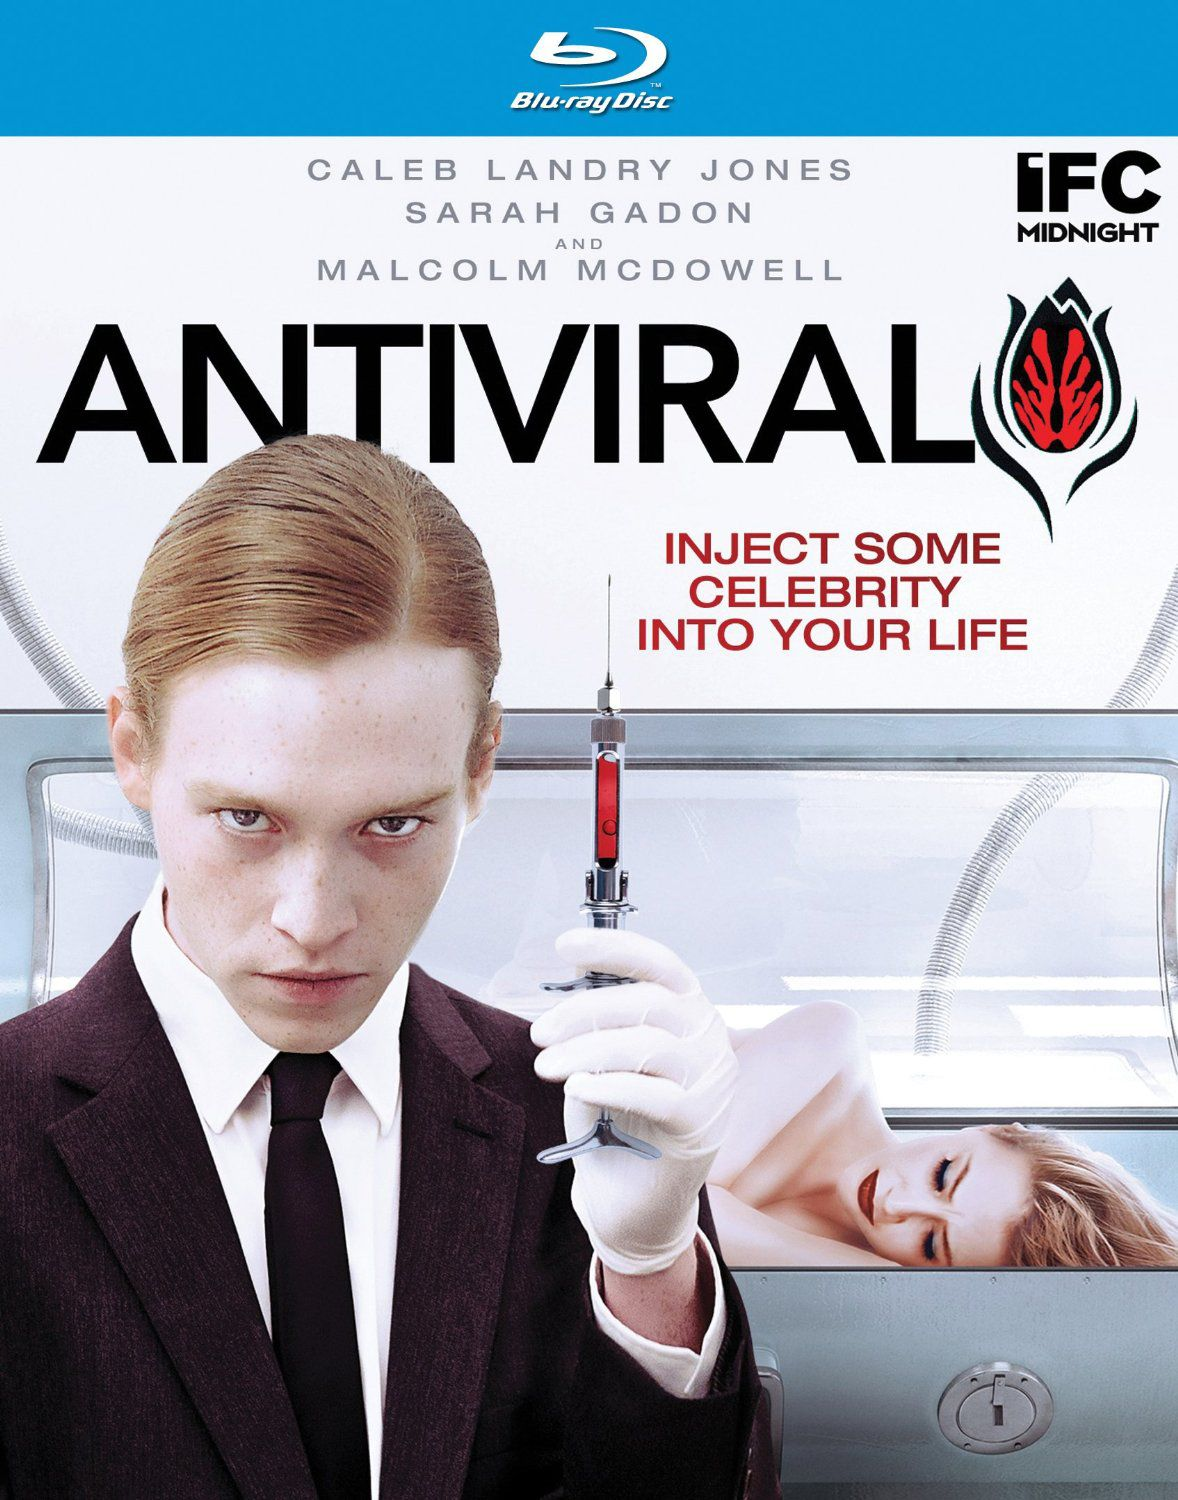 Publicity still for Antiviral